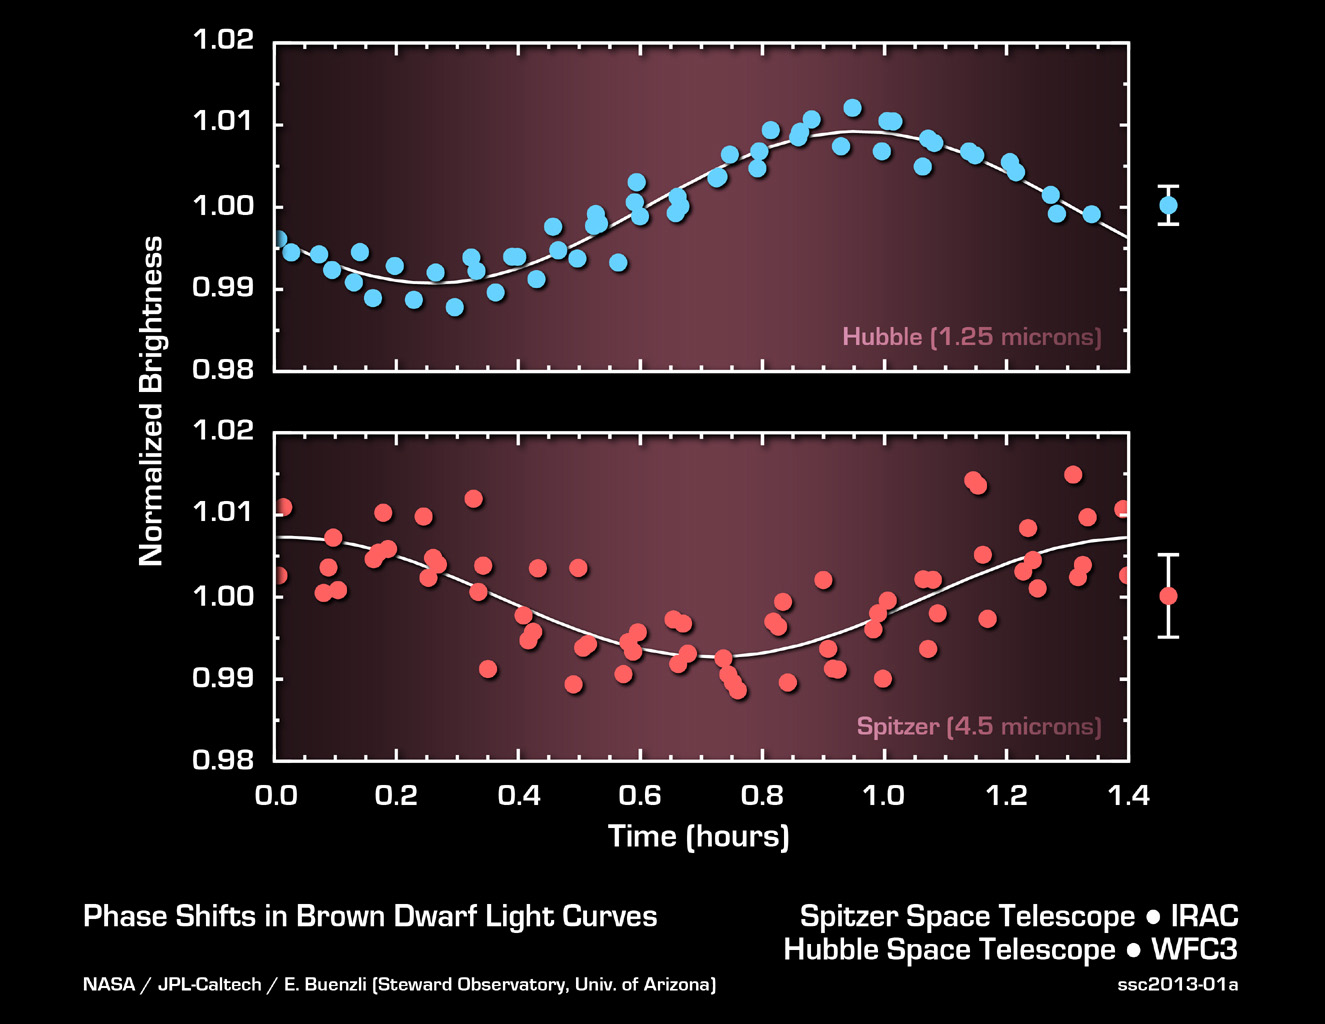 This graph shows the brightness variations of the brown dwarf named 2MASSJ22282889-431026 measured simultaneously by both NASA's Hubble and Spitzer space telescopes.